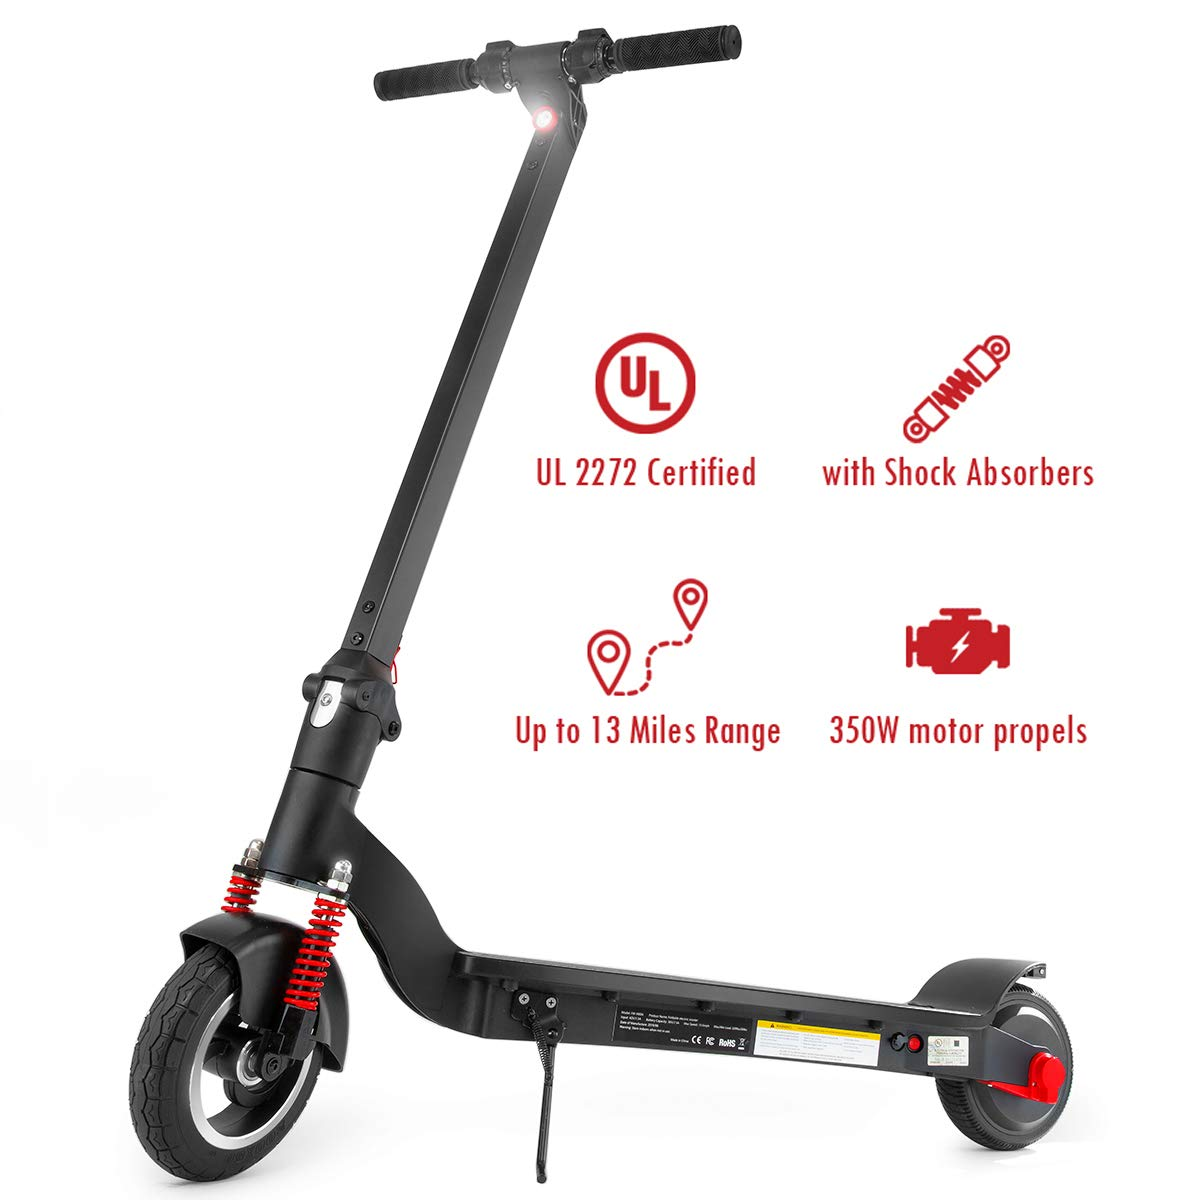 ROCKETX 8'' Electric Scooter with Shock Absorbers, Up to 13 Miles Range, Commuting Scooter by ROCKETX